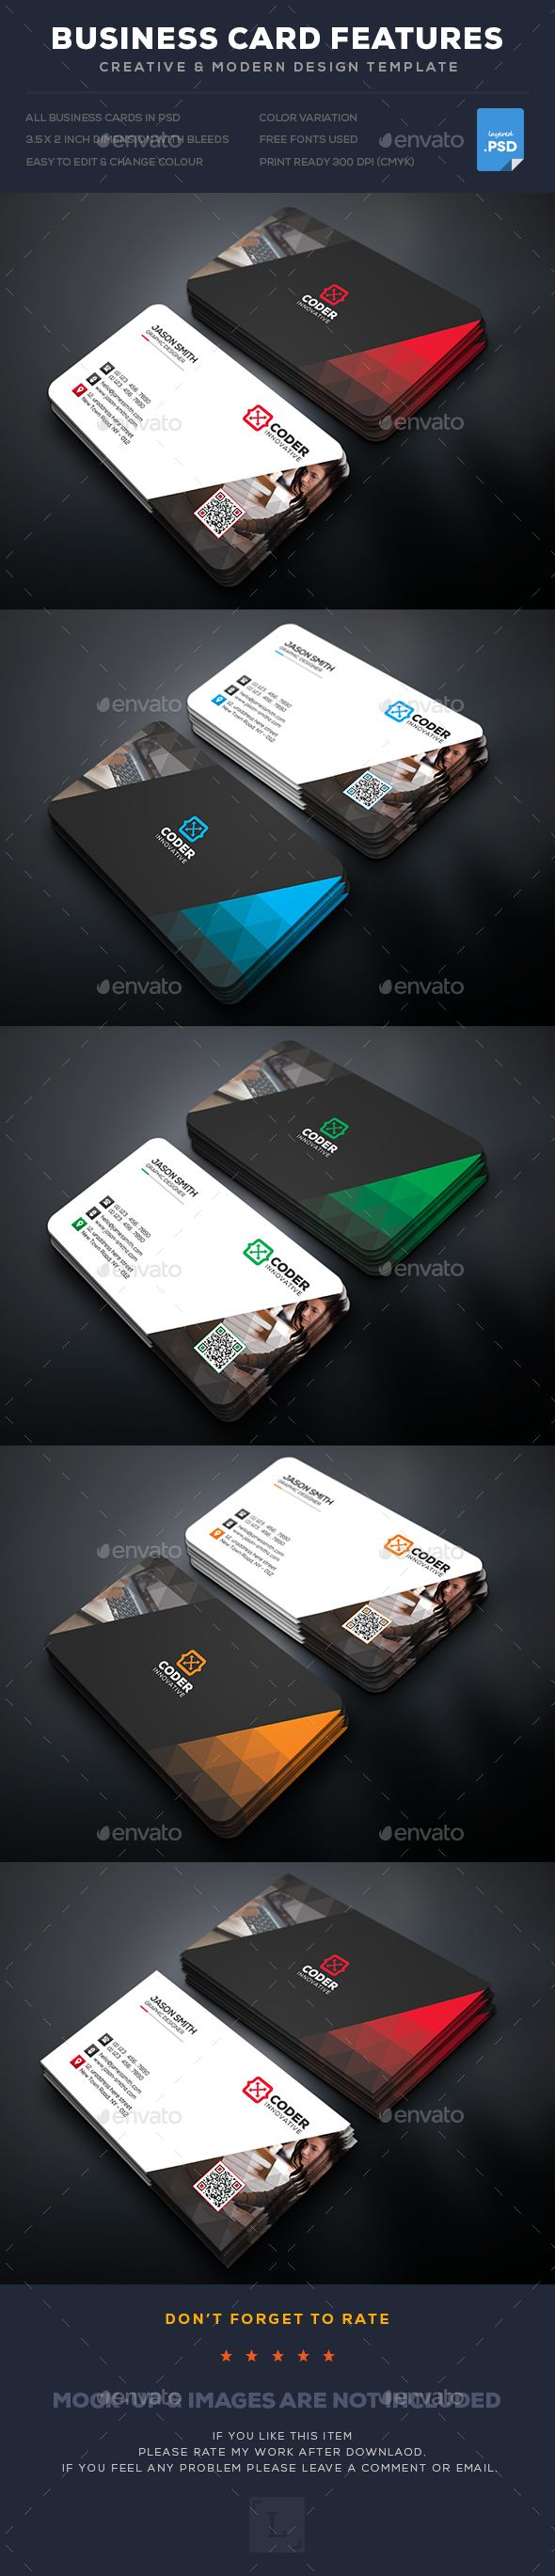 Creative Business Card Template PSD. Download here: https://graphicriver.net/item/creative-business-card/17449667?ref=ksioks